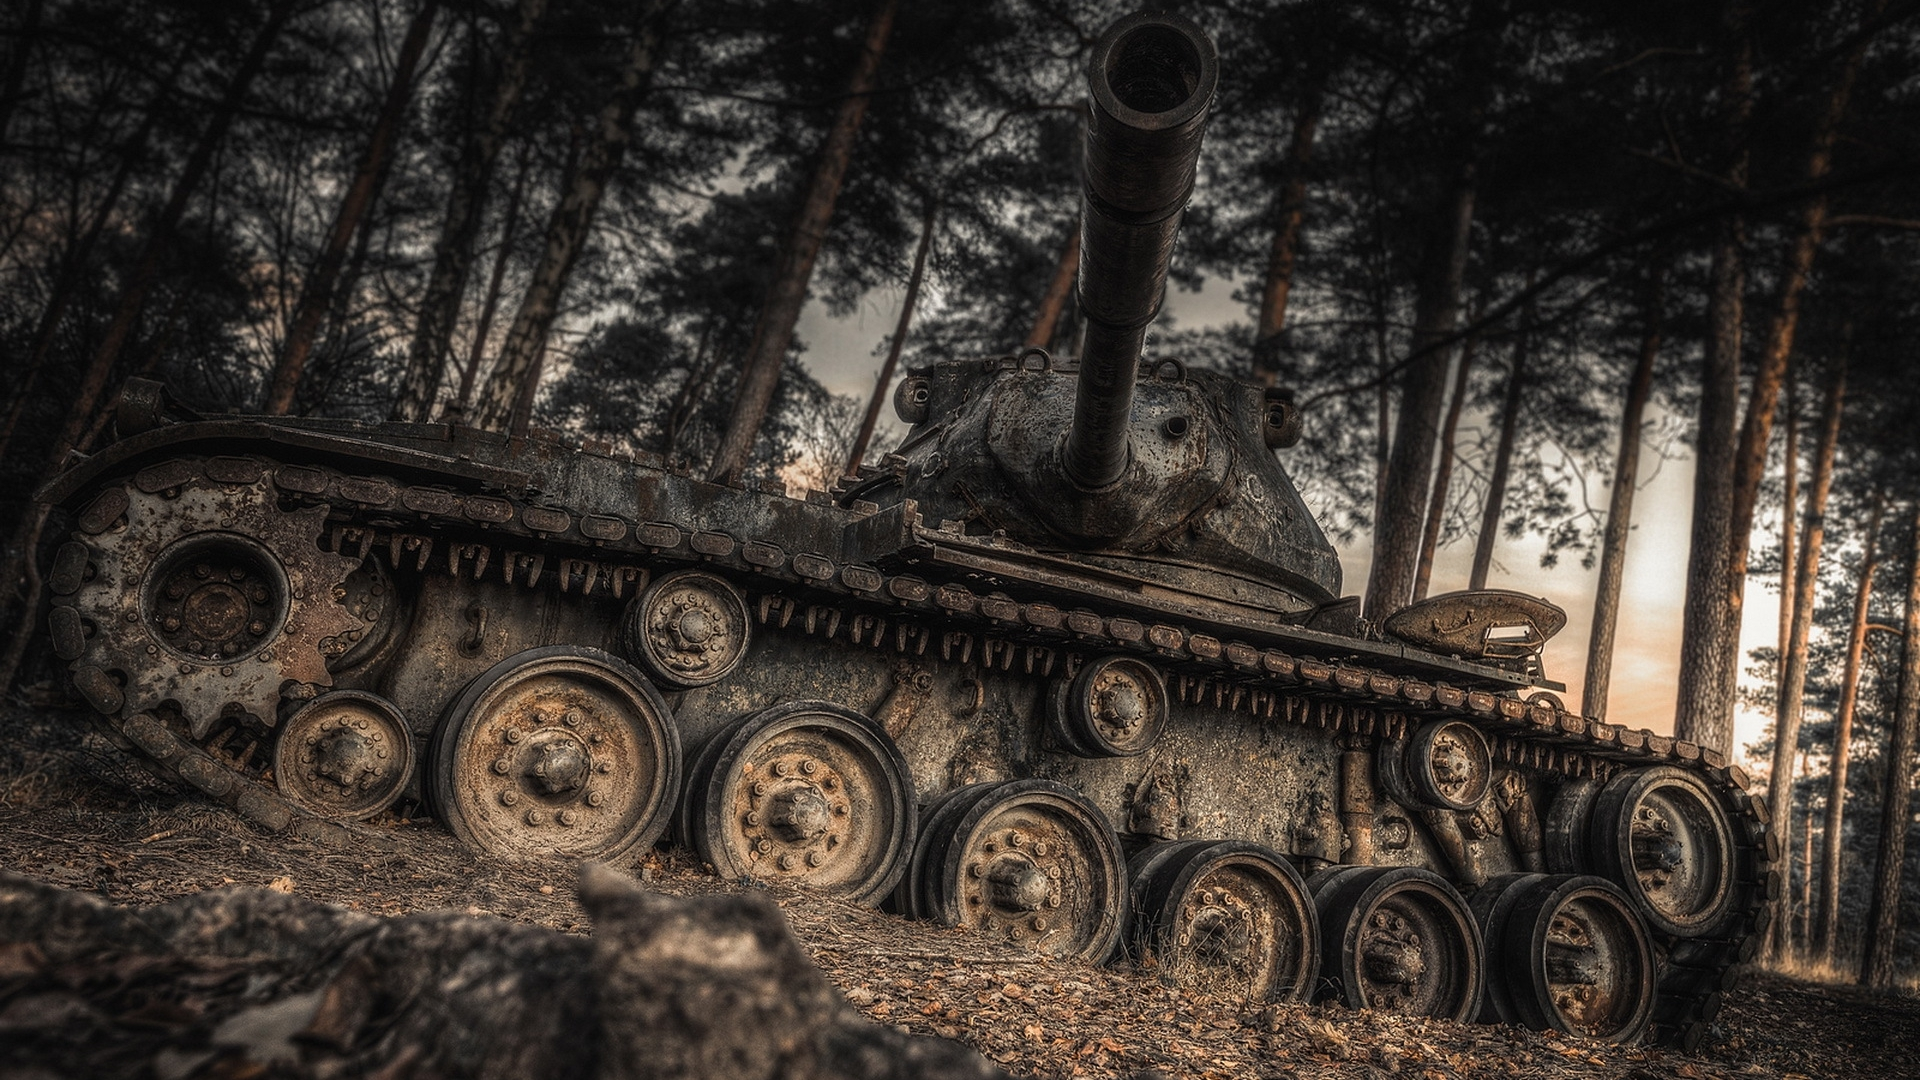 Image: Tank, abandoned, crawler, heavy military equipment, forest